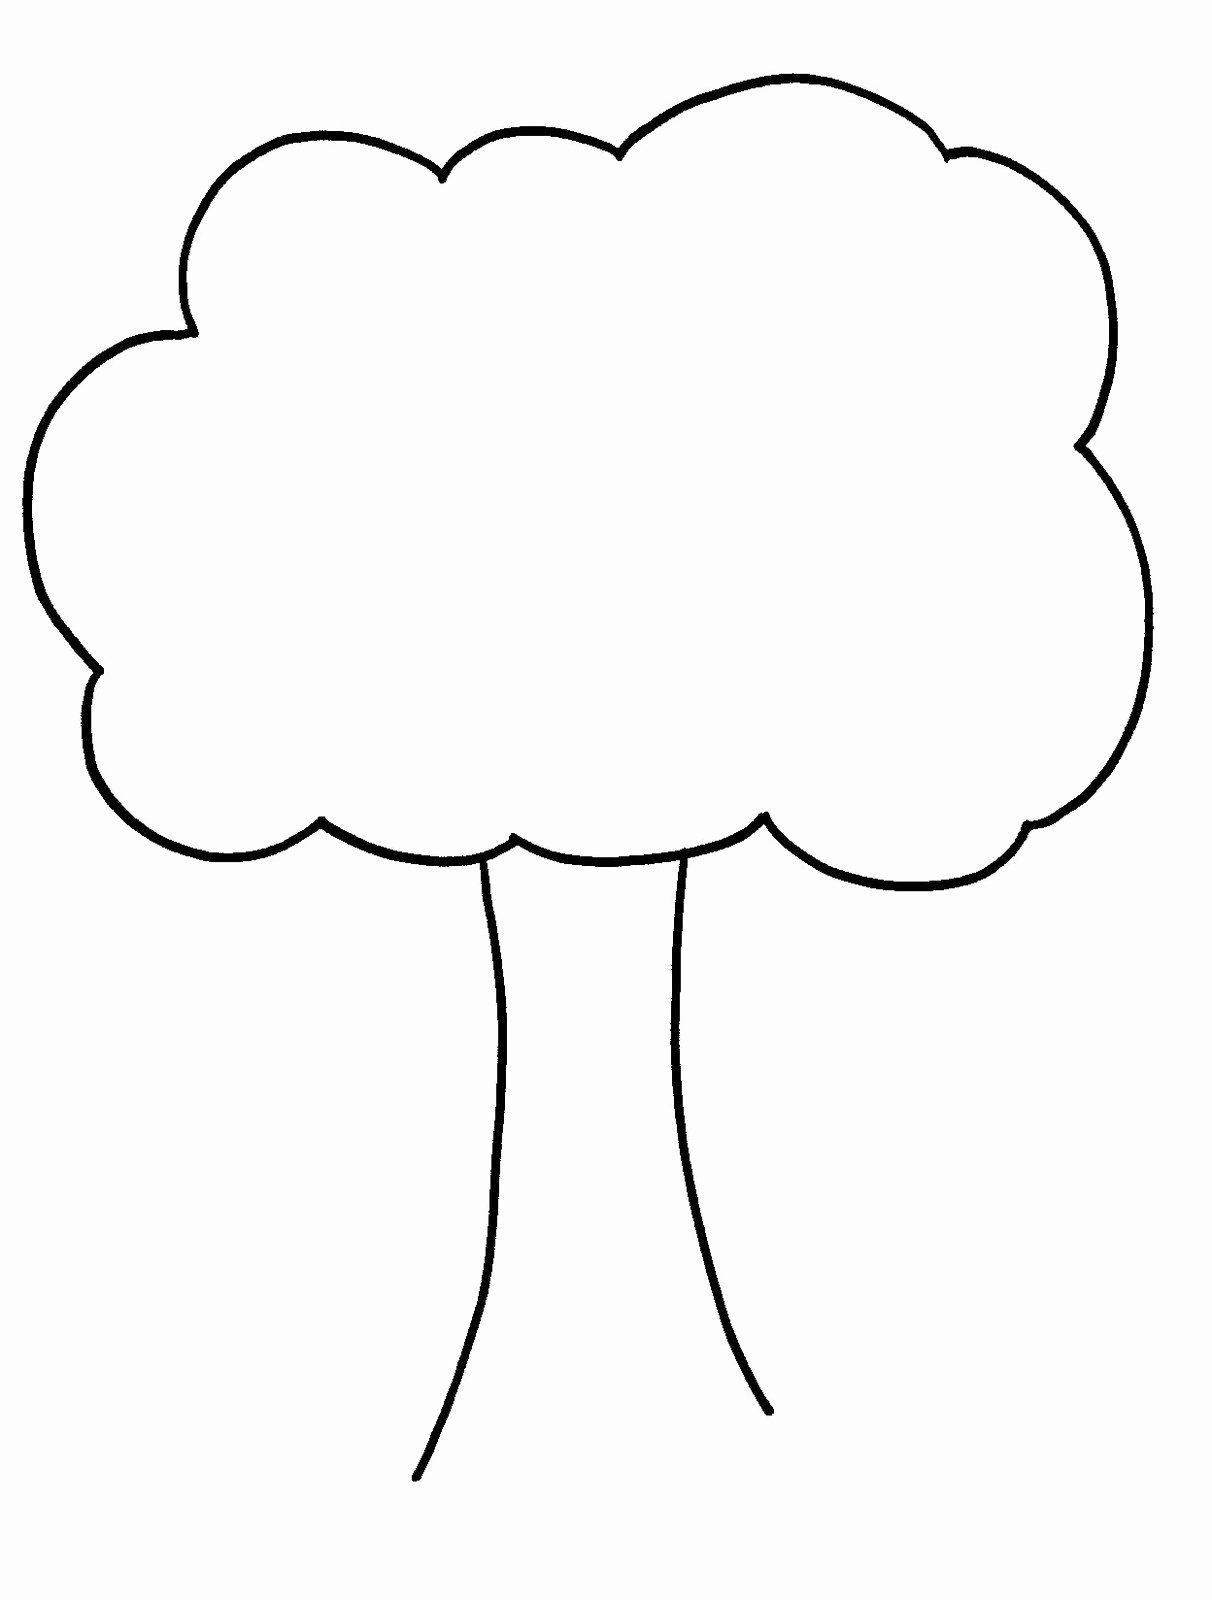 Simple Family Tree Template Luxury Bare Tree Template Cliparts